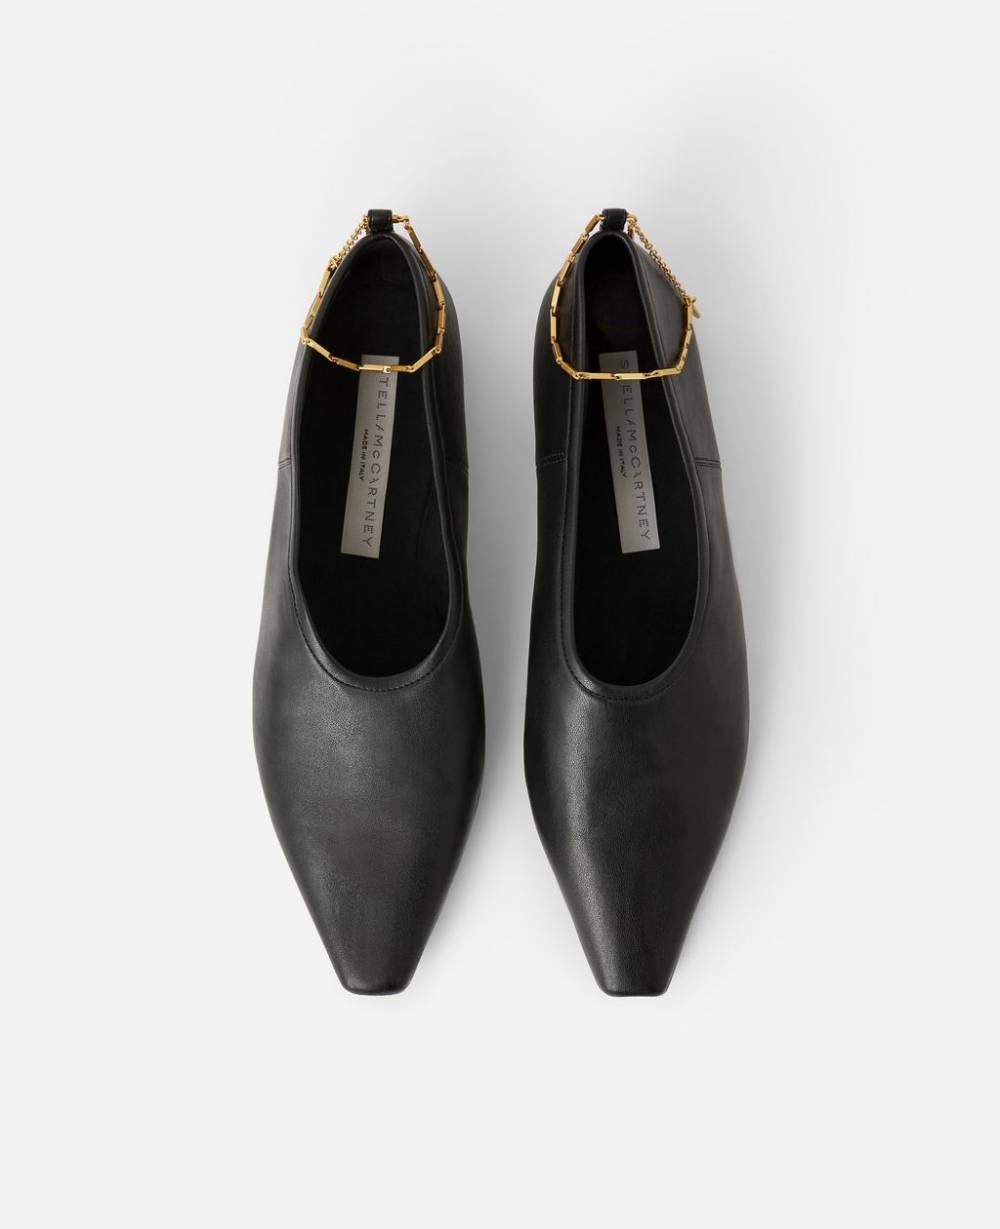 stella mccartney sustainable affordable flats